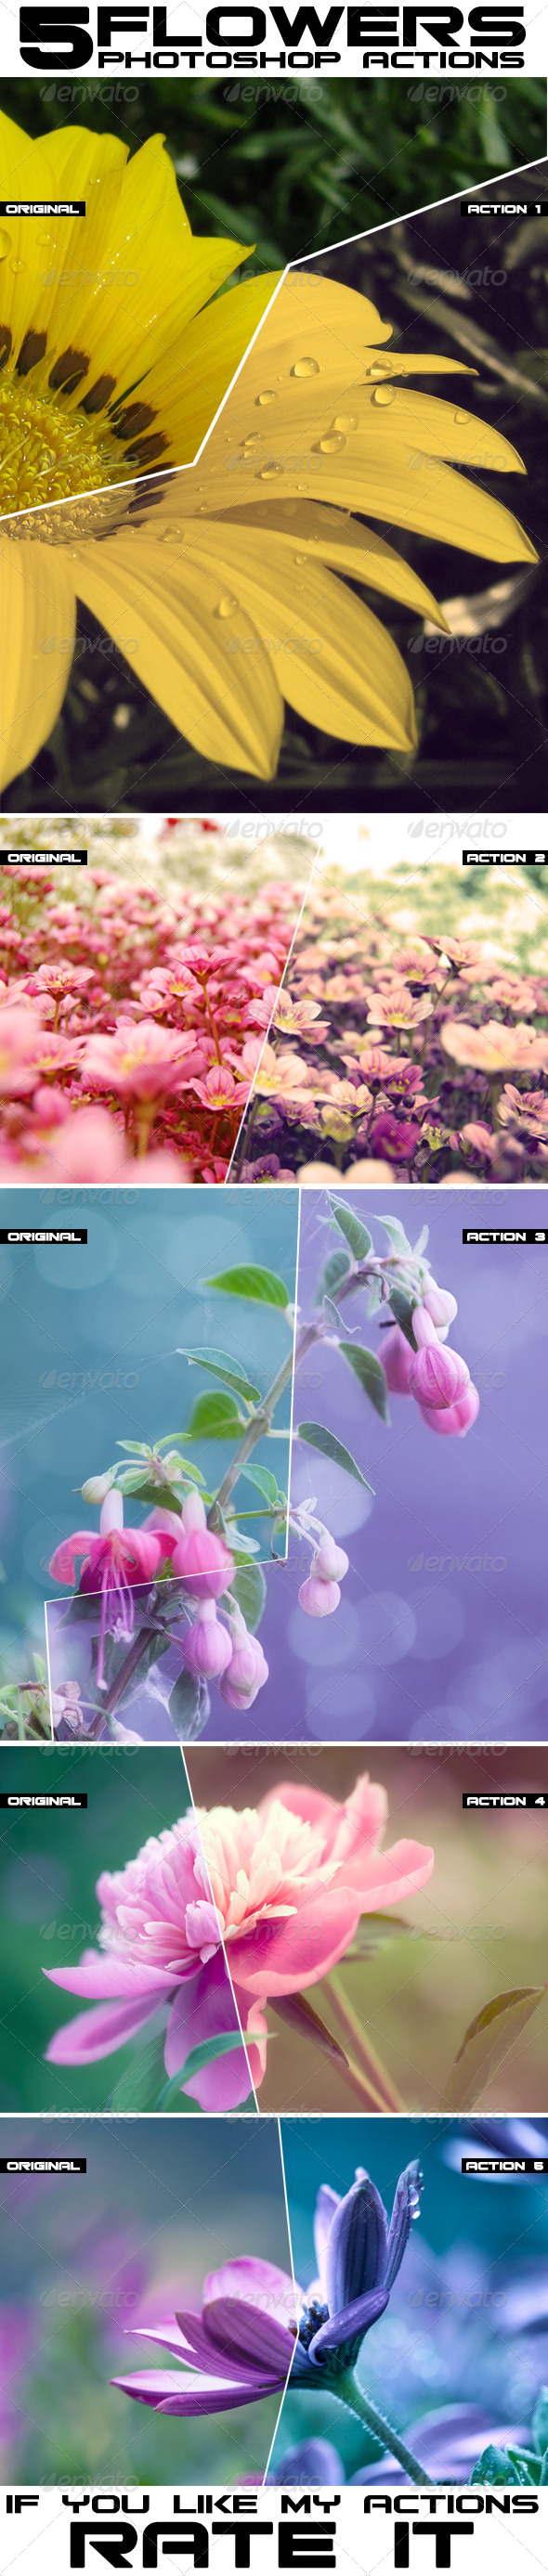 GraphicRiver 5 Flower Photoshop Actions 8055905